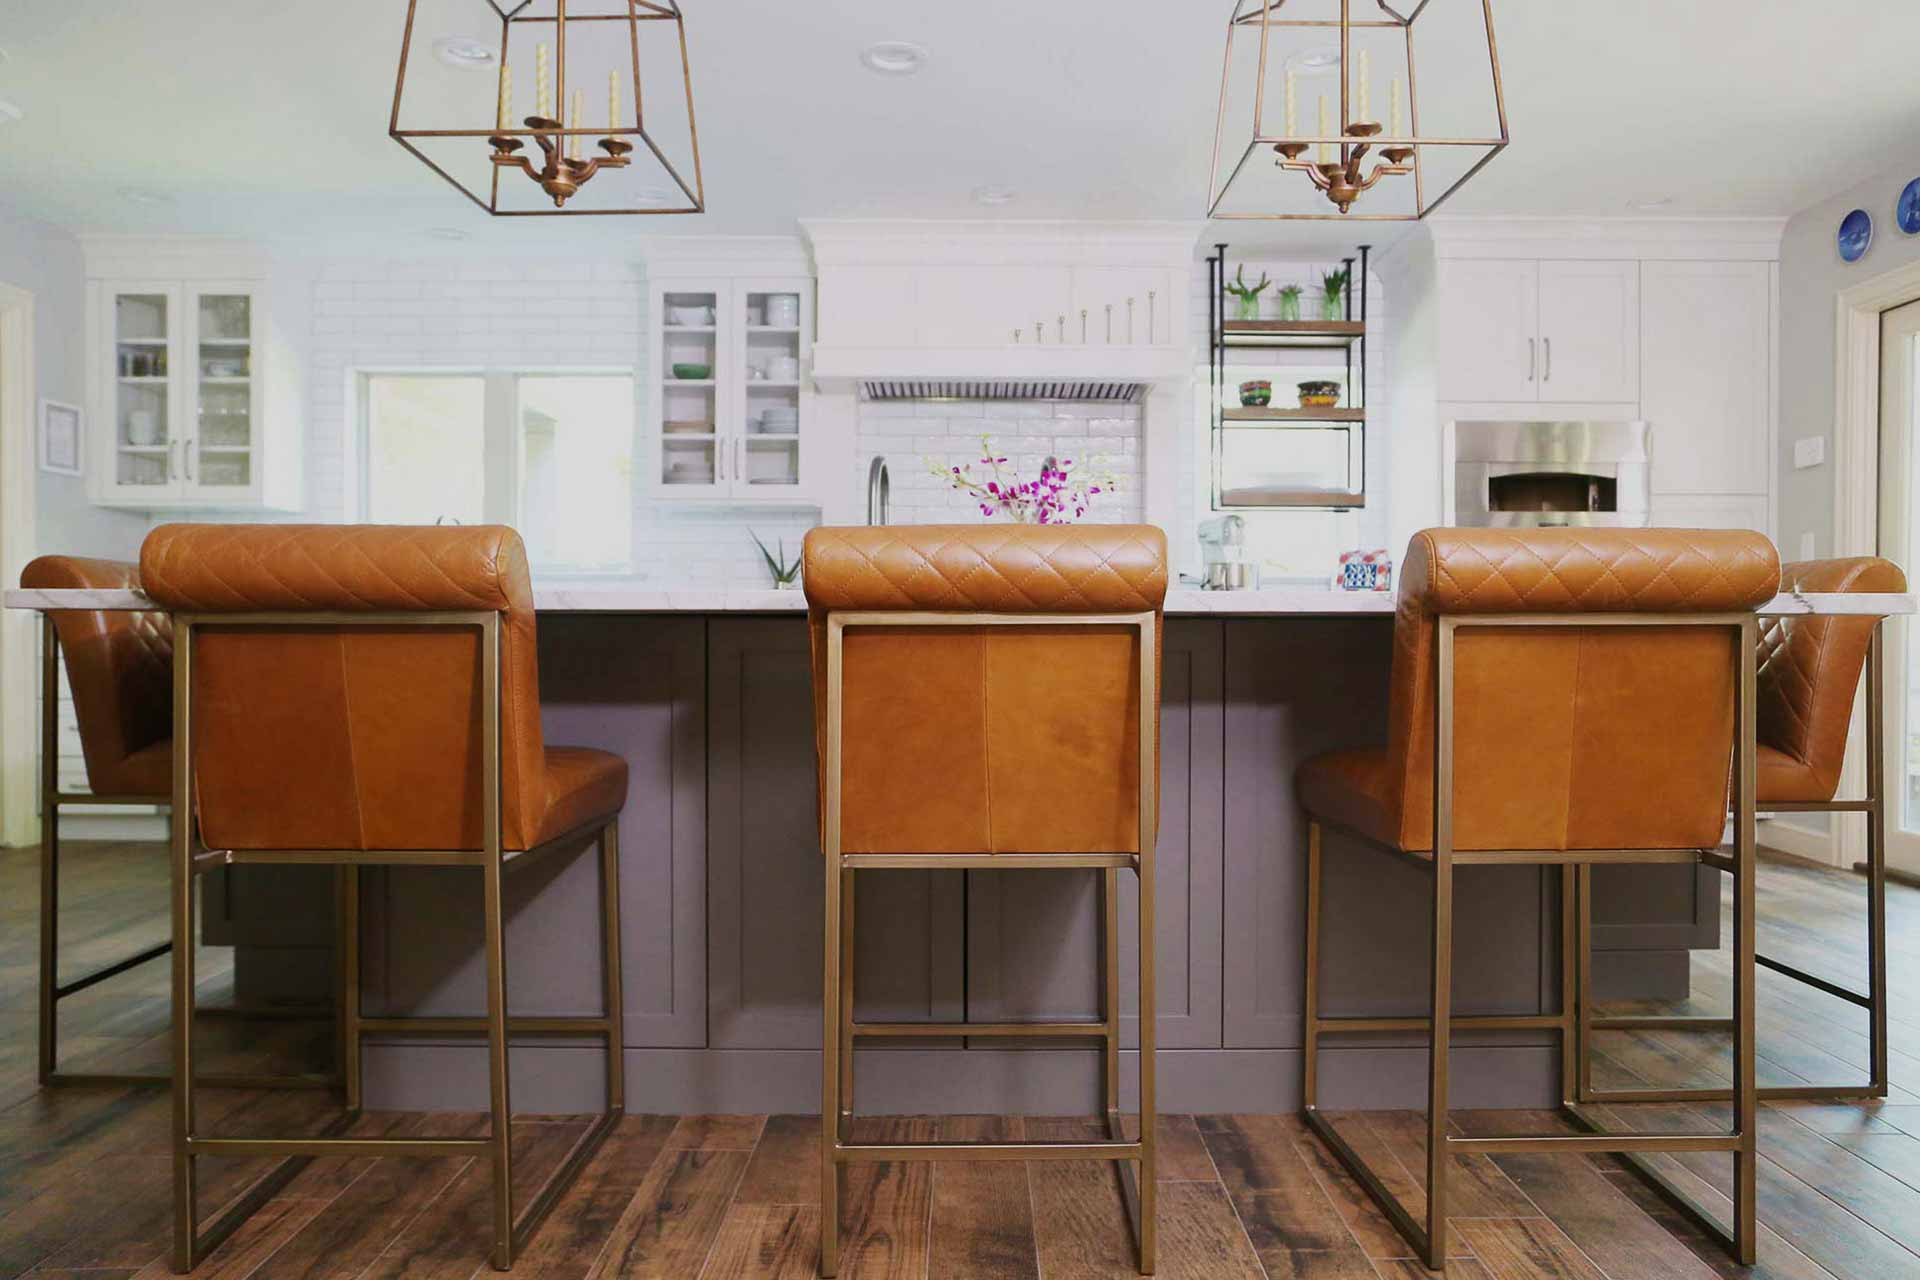 Kitchen design and remodel Tulsa spacious Tulsa kitchen with large island stylish leather seating decorative island pendant lights